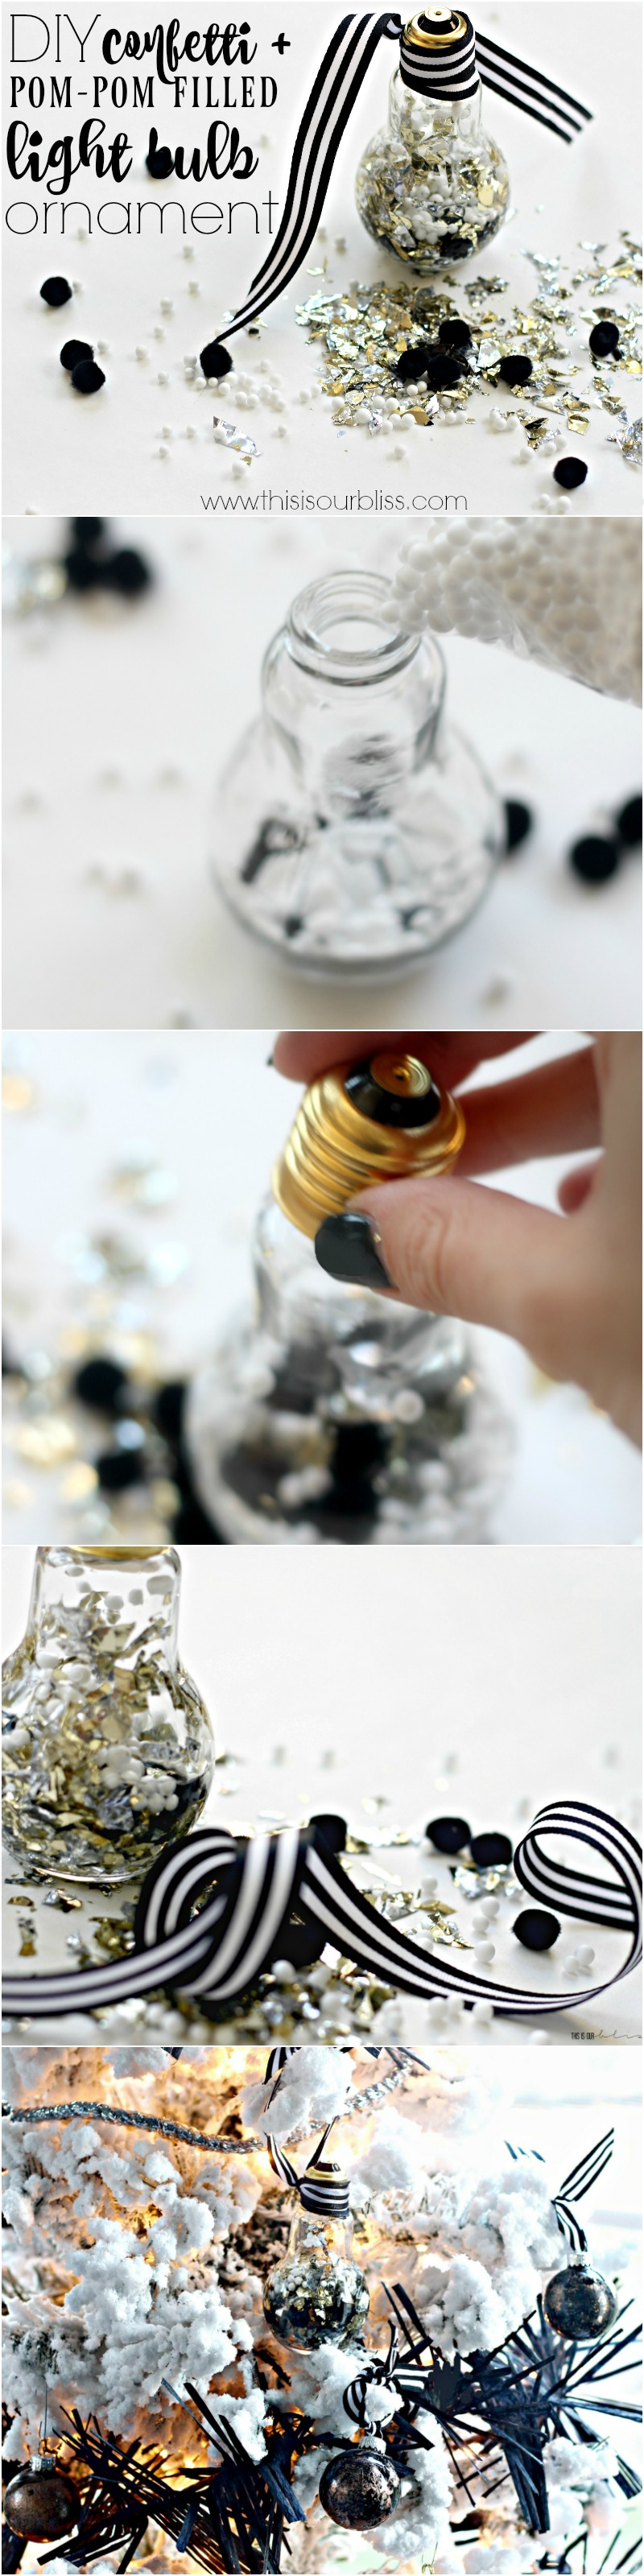 This is our Bliss: DIY Foil Confetti + Pom-pom + snow-filled Light Bulb Ornament | Eclectic Ornaments of Christmas Hop || www.thisisourbliss.com